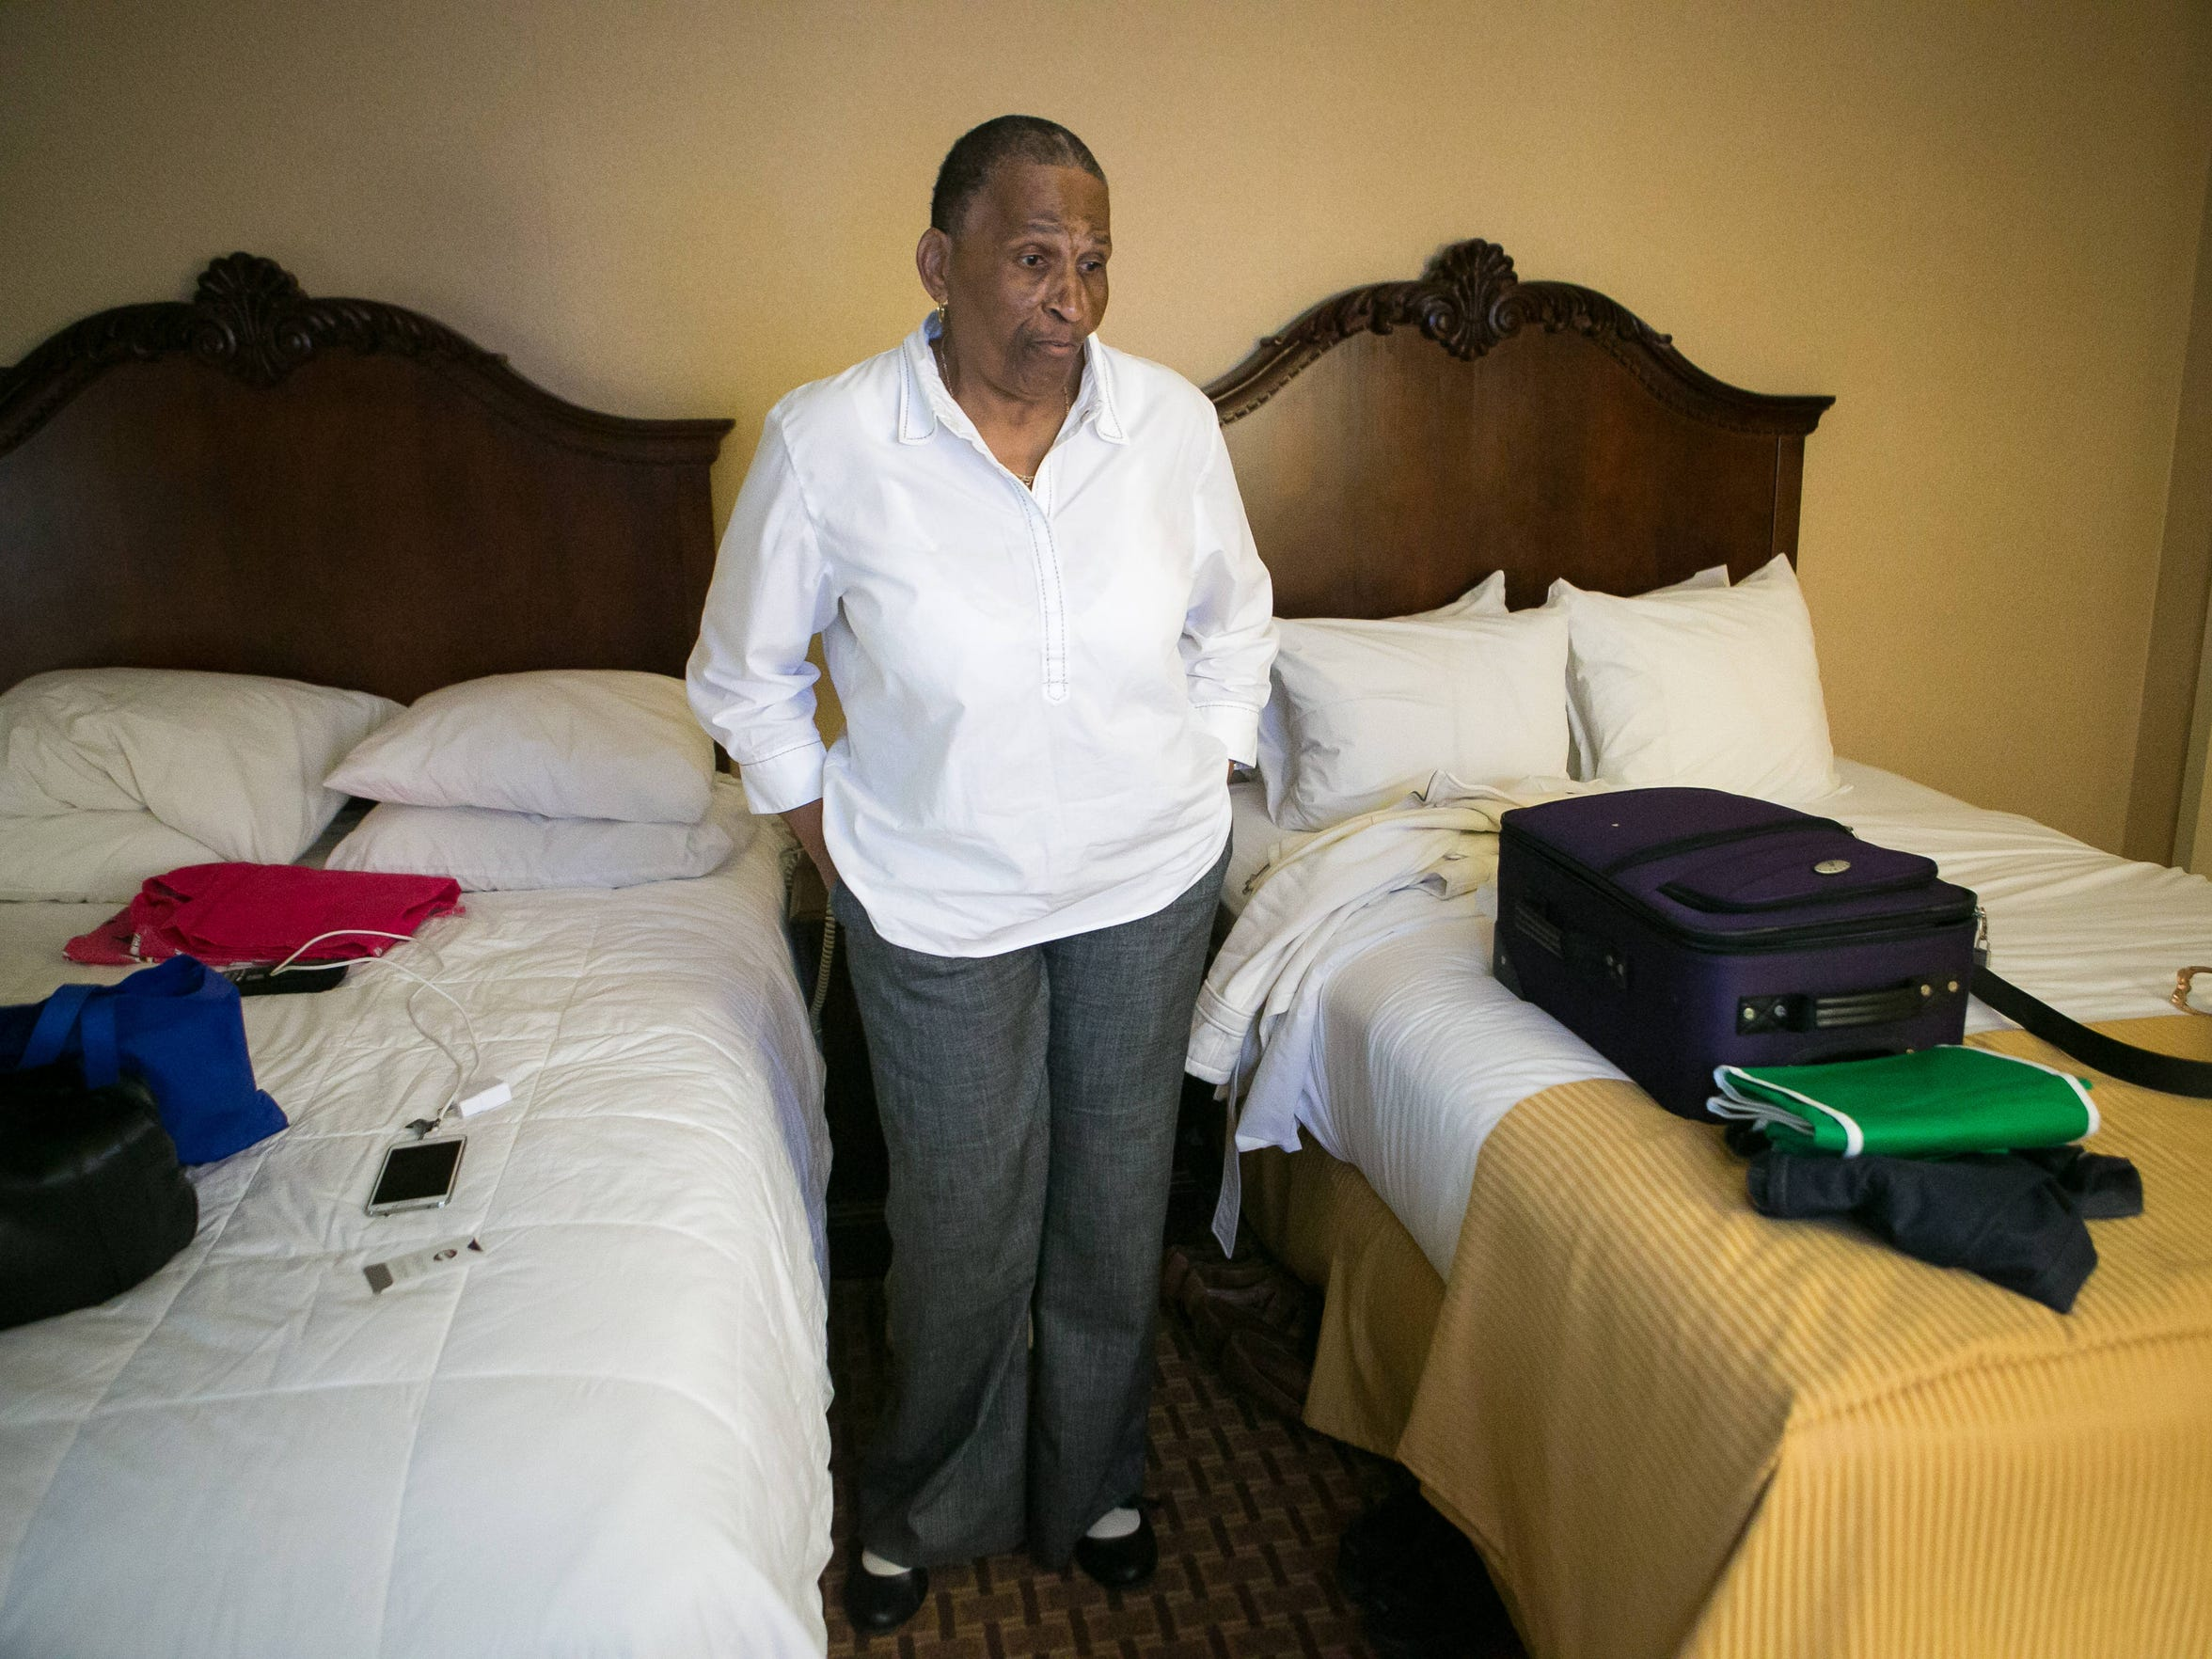 Mary Douglas-Bailey, who used to live at Evergreen Apartments at Riverside Heights near Elsmere, now has been living at Clarion Hotel in New Castle since March 26 when she was evicted from her apartment with other residents due to carbon monoxide that killed four residents.